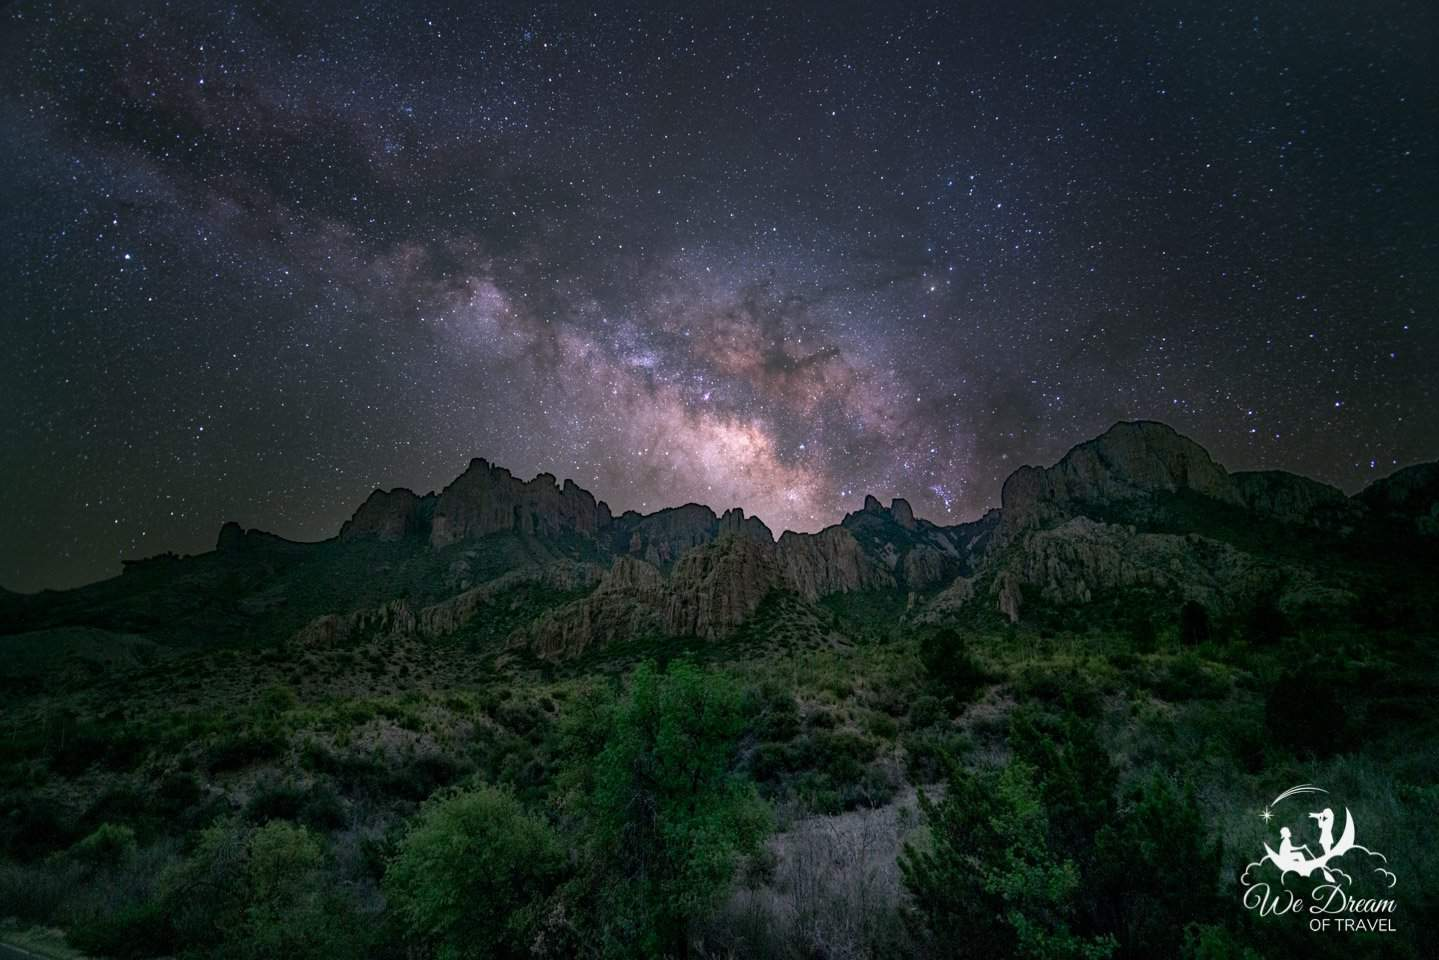 Milky Way picture from Big Bend National Park.